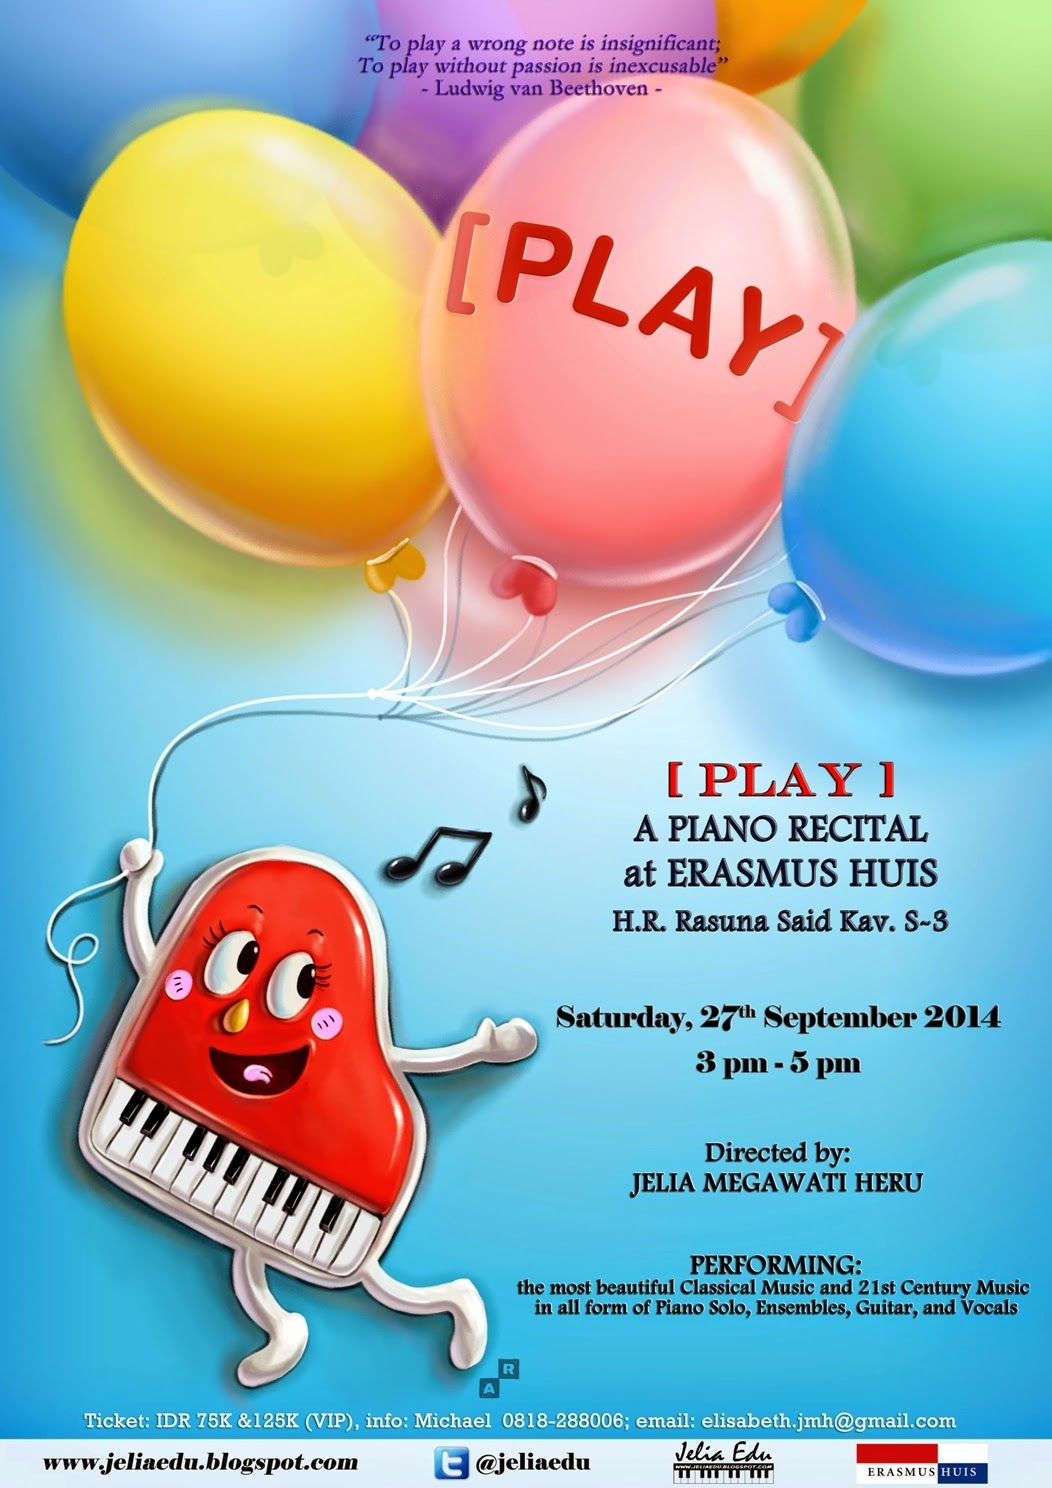 http://jeliaedu.blogspot.com/2014/08/piano-recital-play-erasmus-huis-27th.html